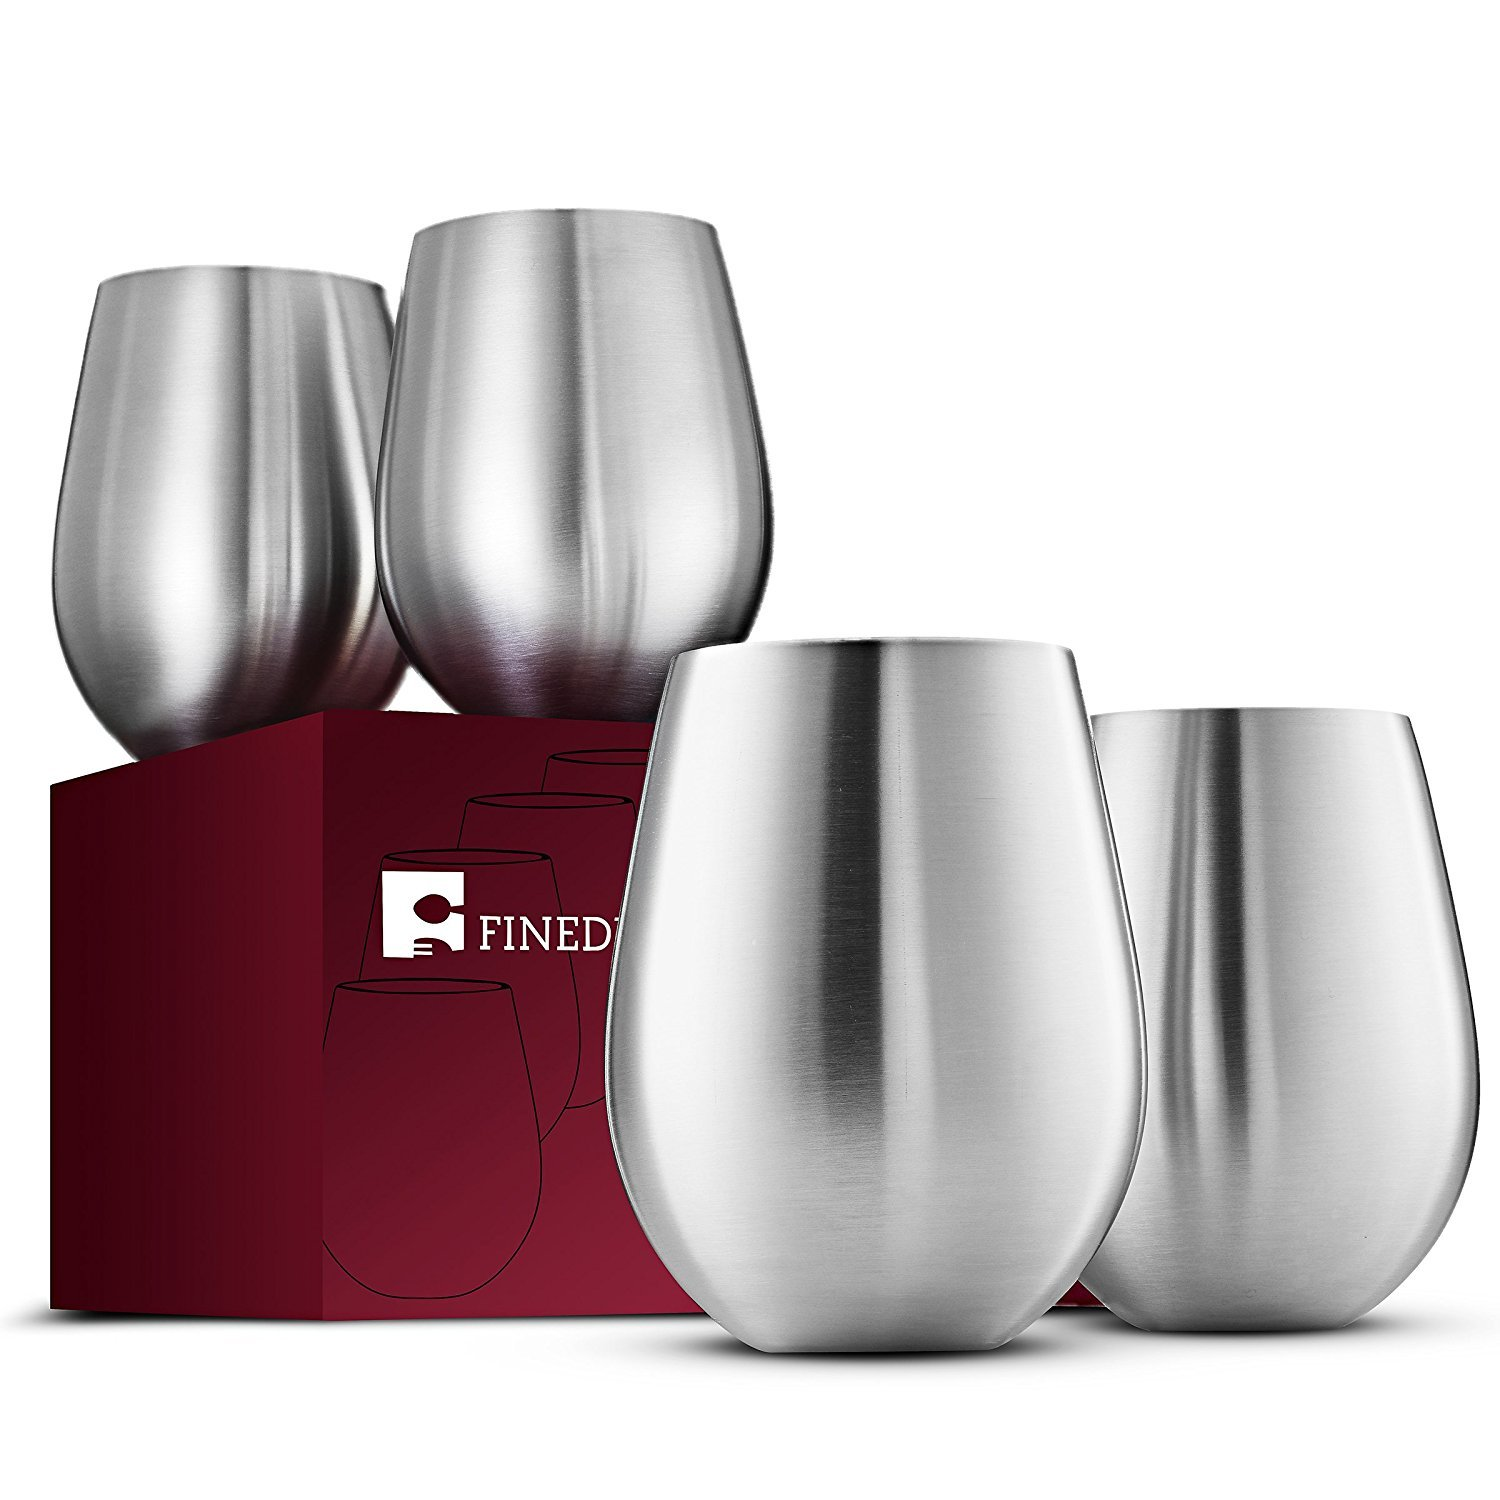 Stainless Steel Wine Glasses - Set of 4 Large & Elegant 18 Oz. Premium Grade 18/8 Stainless Steel Red & White Stemless Wine Glasses, Unbreakable, Portable Wine Glass, for Daily Outdoor Events, Picnics by FINEDINE